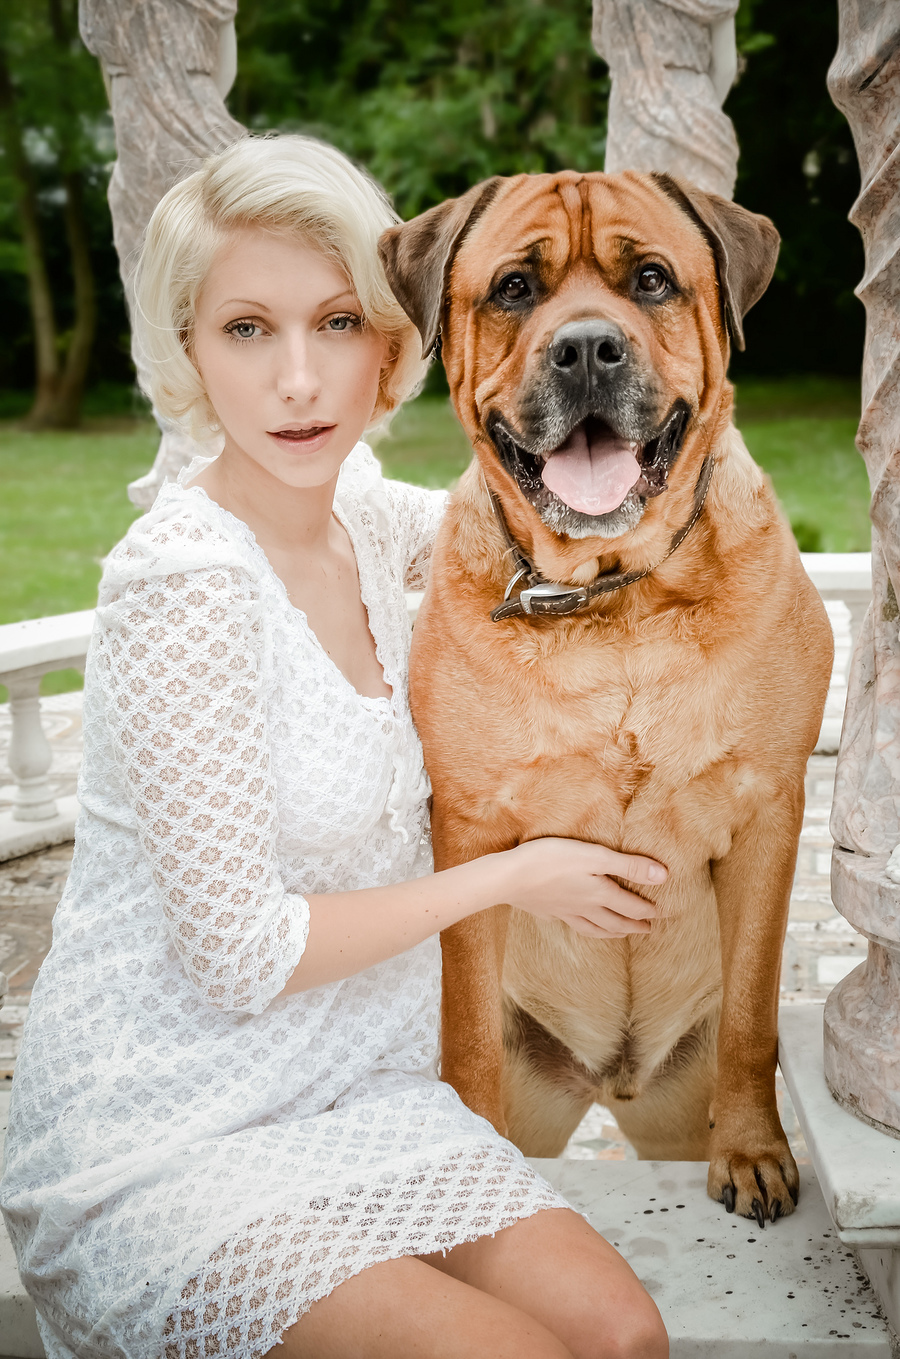 Beautiful girl and dog / Photography by Sophie Merlo / Uploaded 7th July 2014 @ 09:08 PM